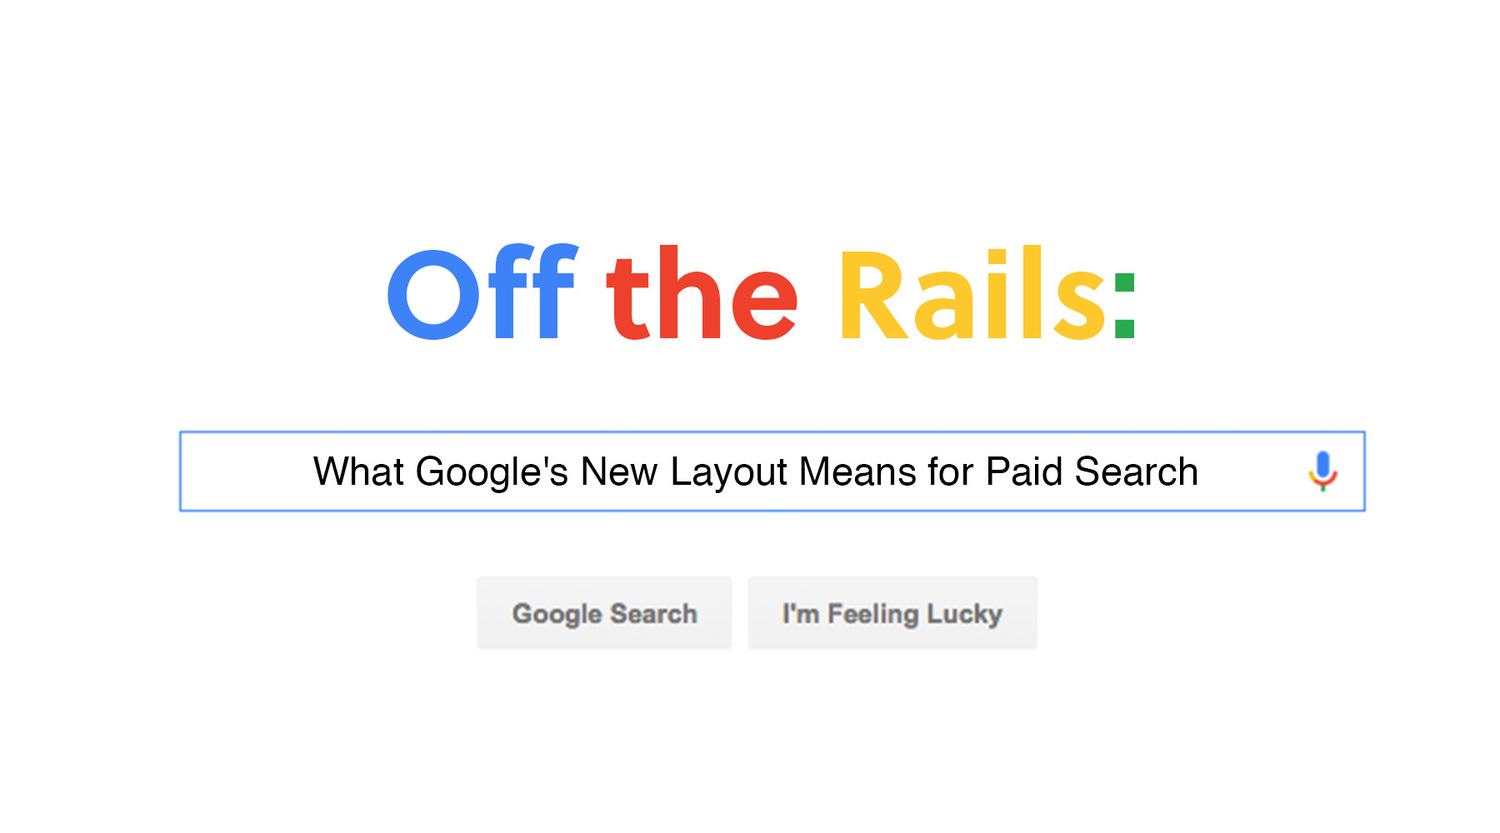 Off the Rails: What Google's New Layout Means for Paid